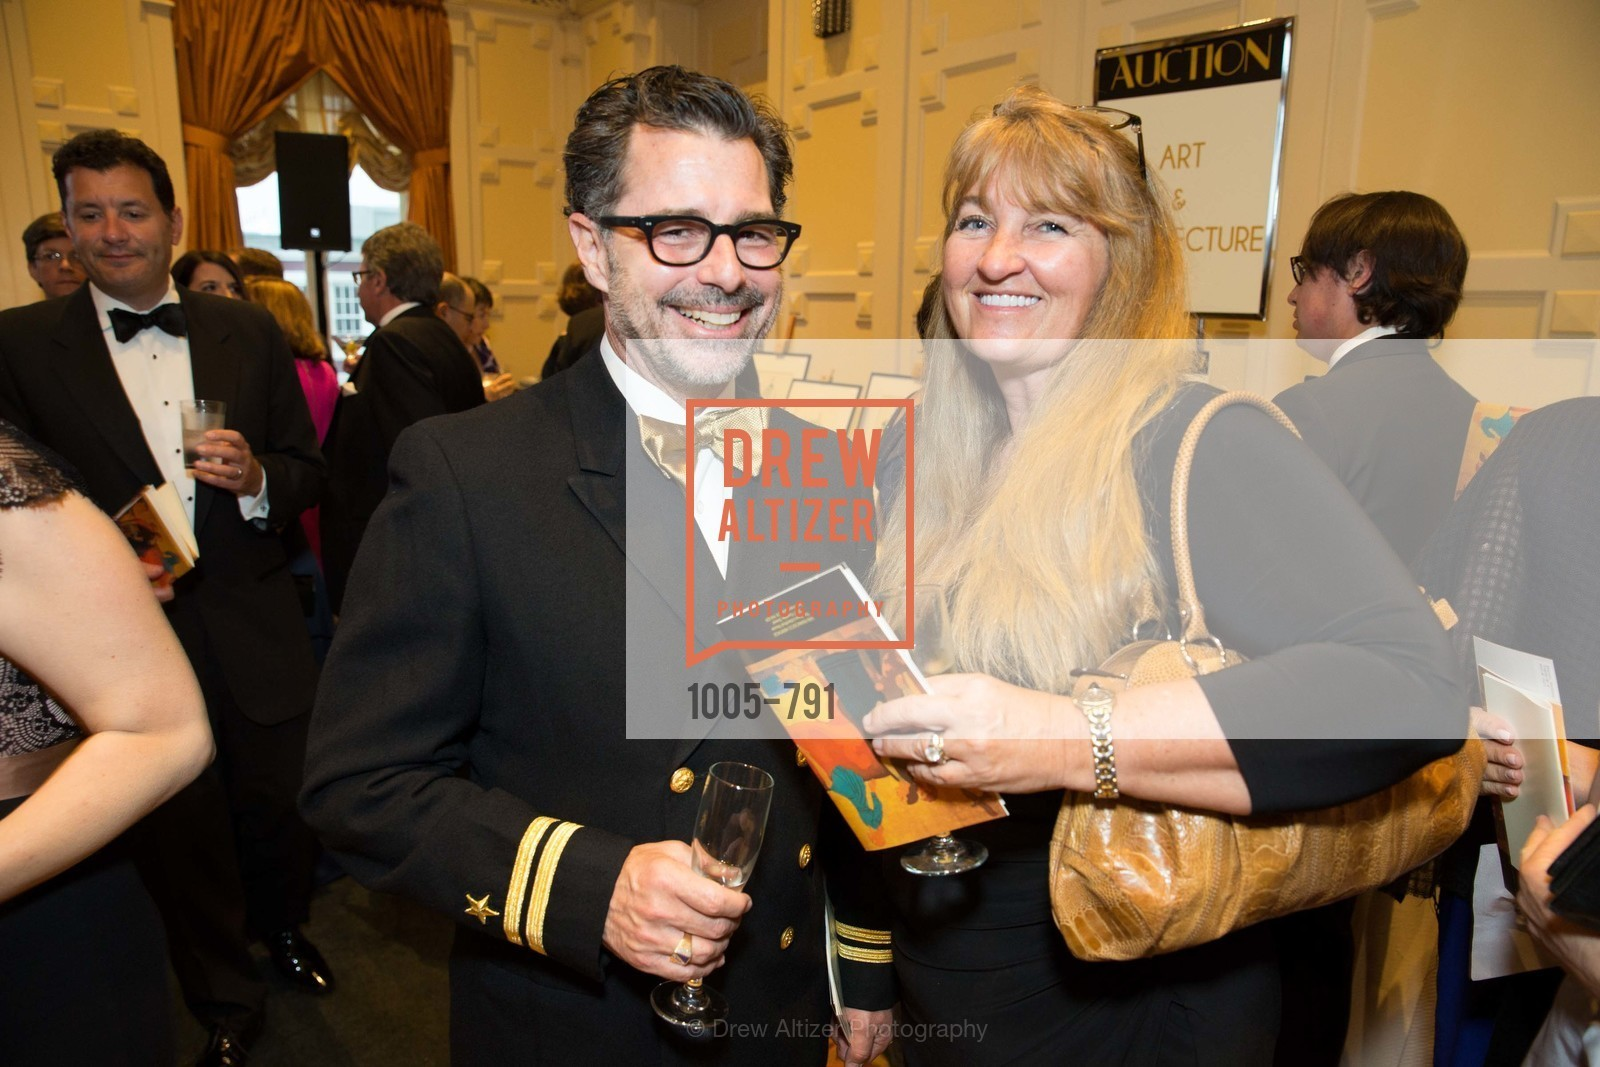 Diane Petty, SAN FRANCISCO HERITAGE Soiree 2015, US, April 18th, 2015,Drew Altizer, Drew Altizer Photography, full-service agency, private events, San Francisco photographer, photographer california